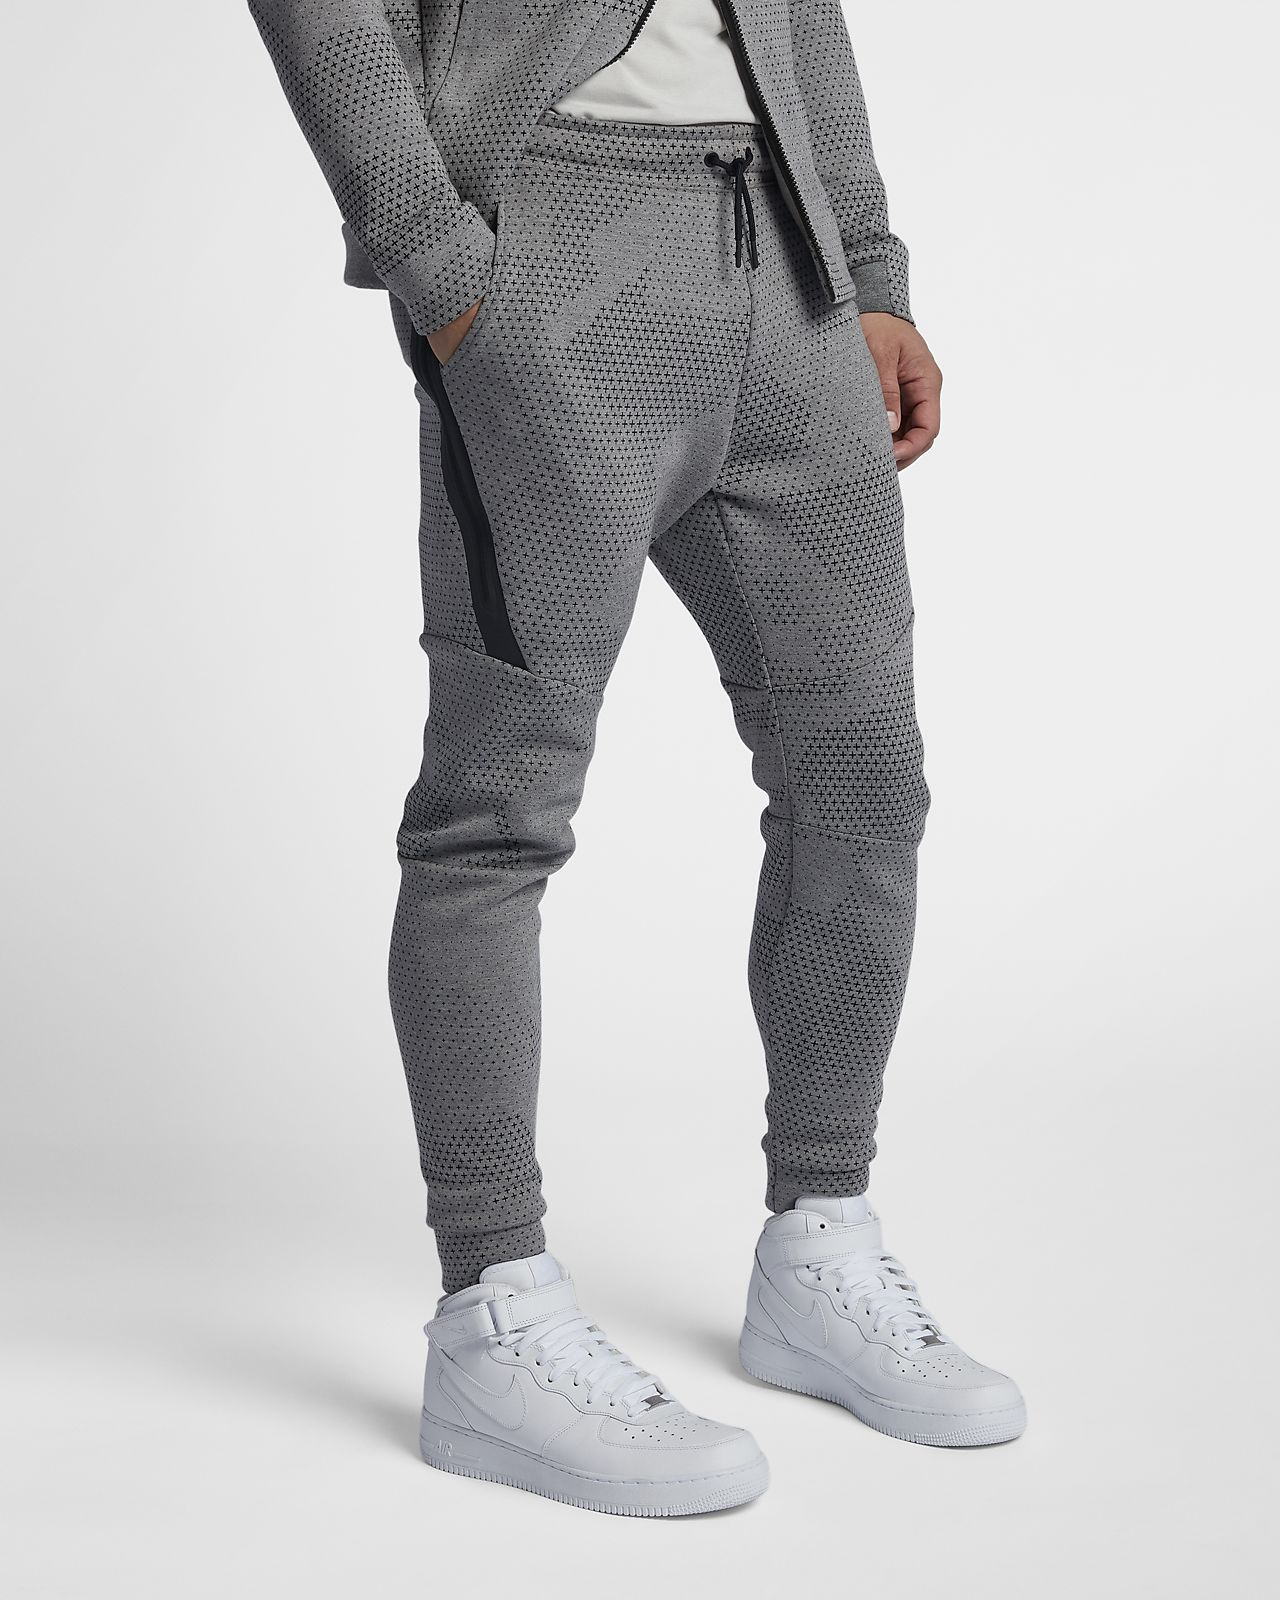 467f02f52d38 Nike Sportswear Tech Fleece Mens Trousers ...